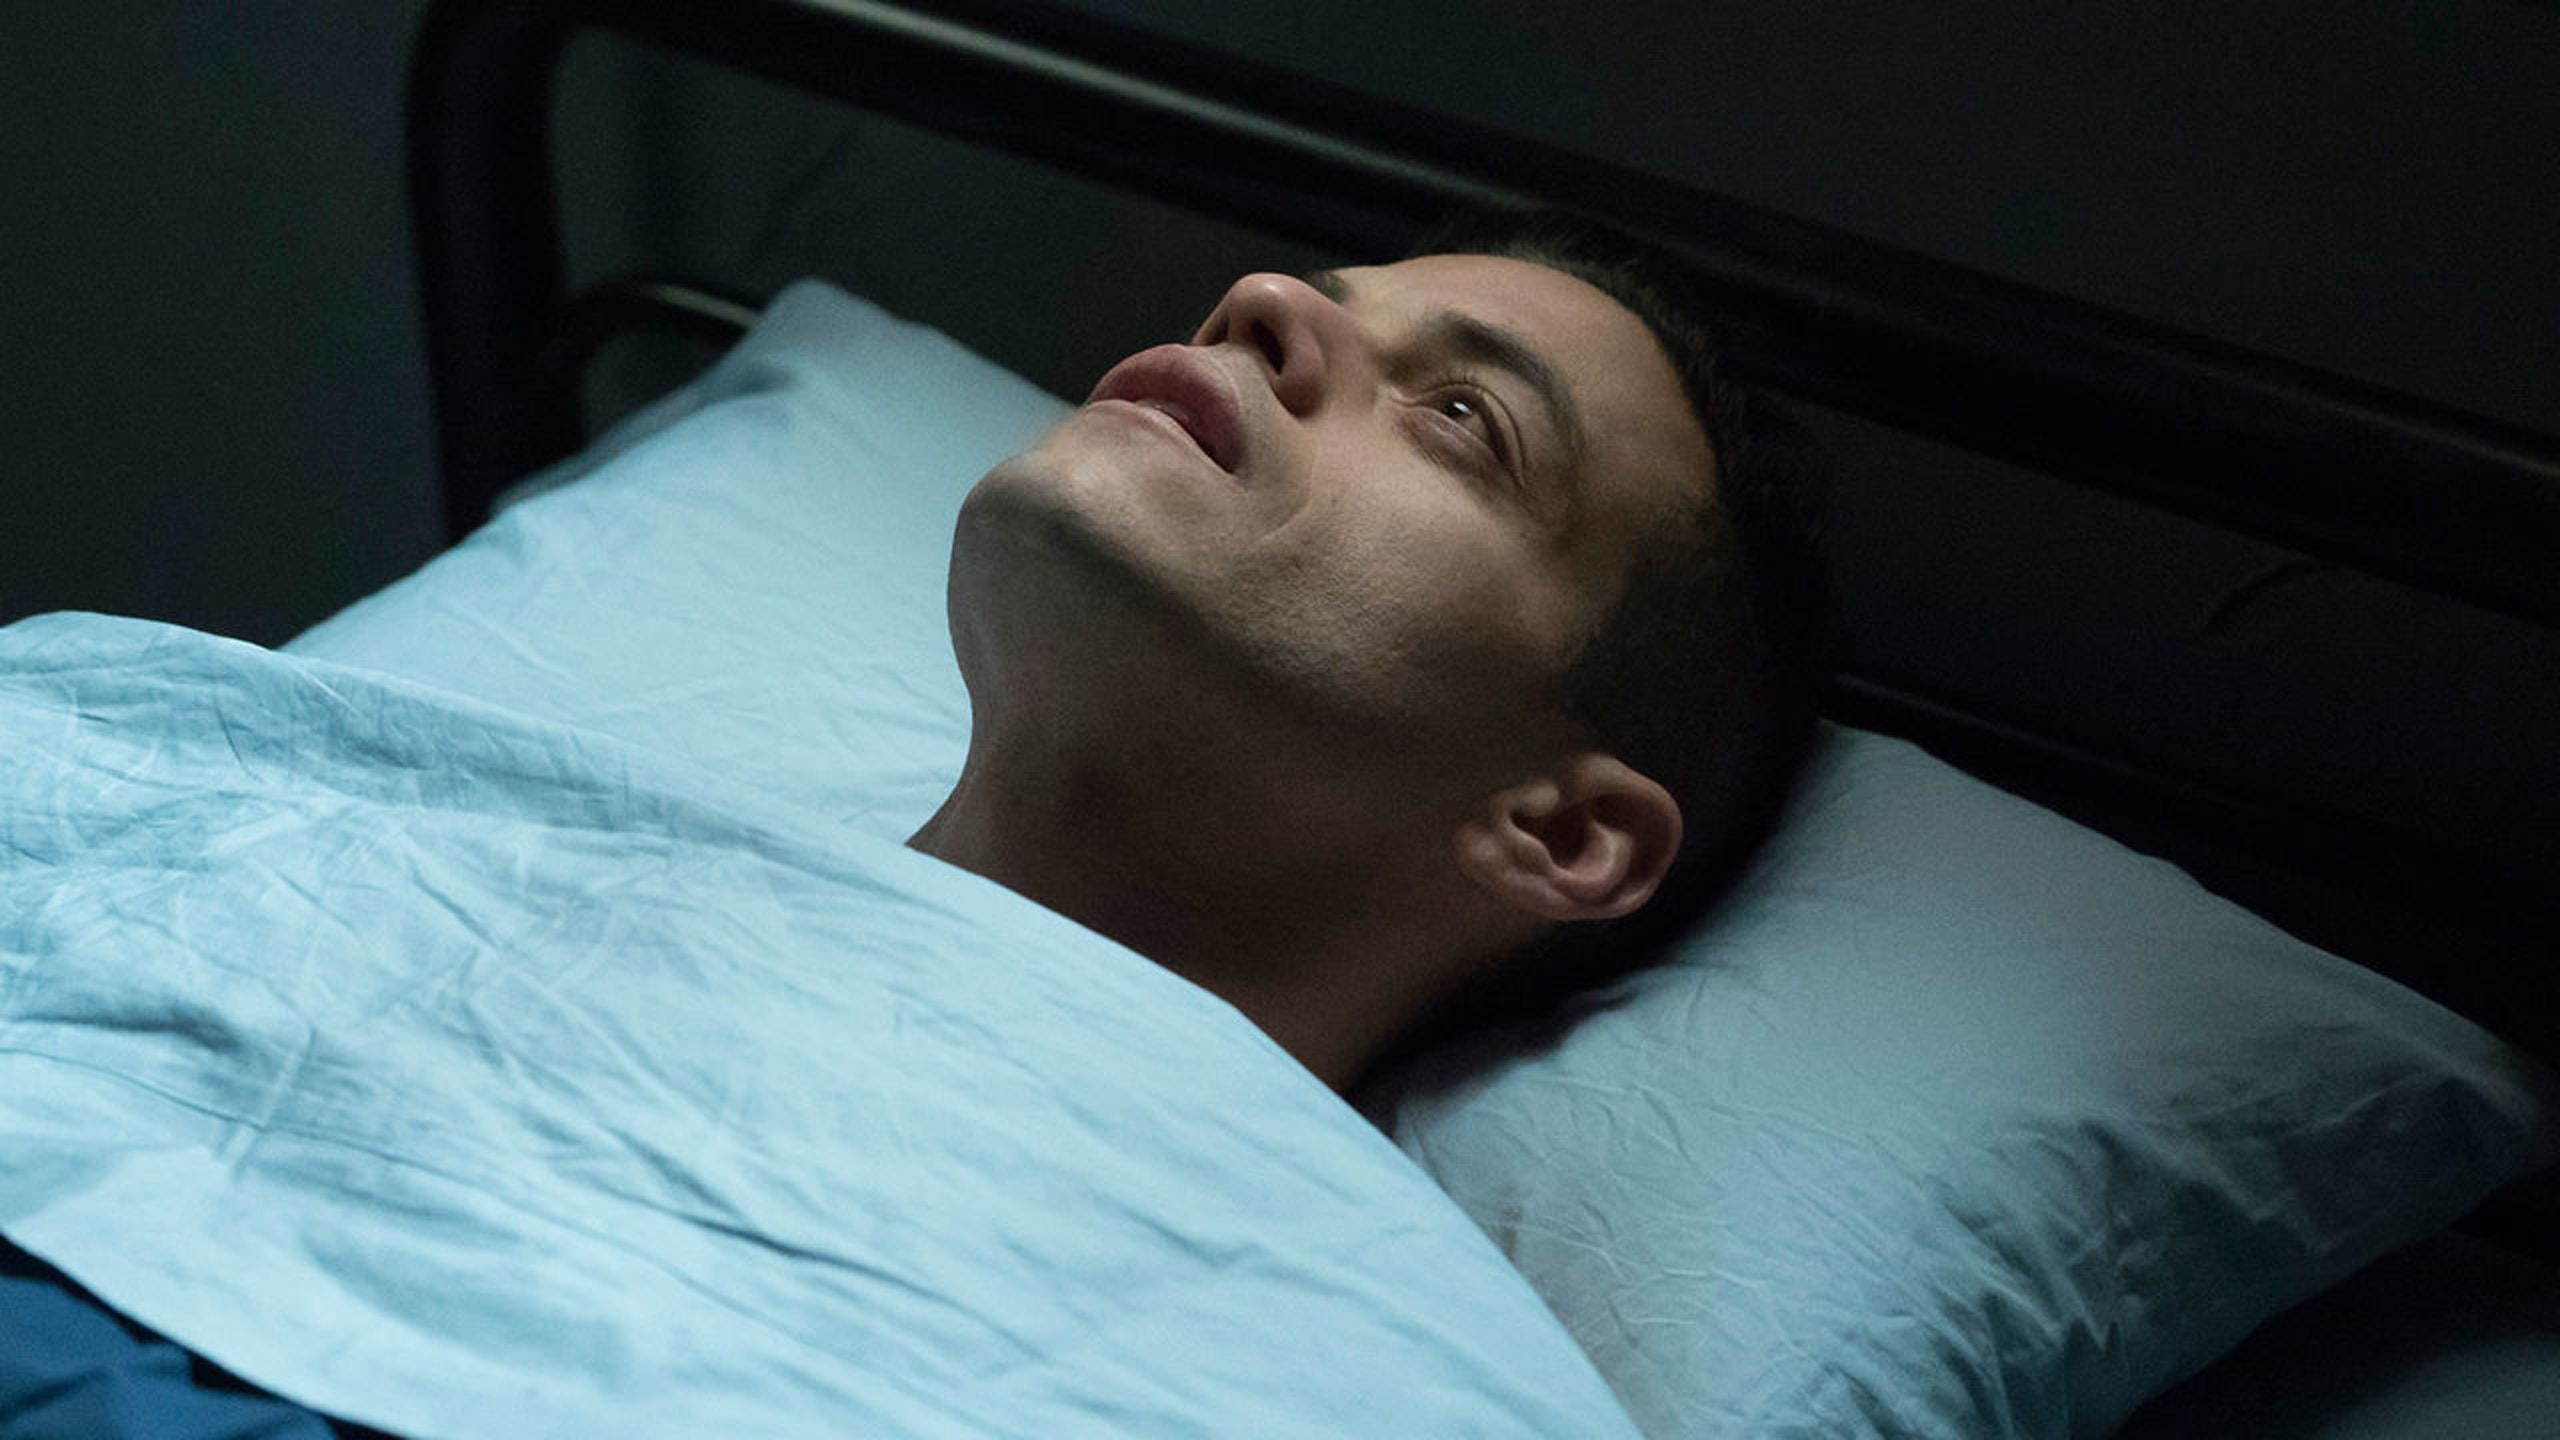 """Elliot (Rami Malek) dreams of a future in """"eps2.2_init1.asec"""" and it's one he's willing to fight for. But will he survive?"""